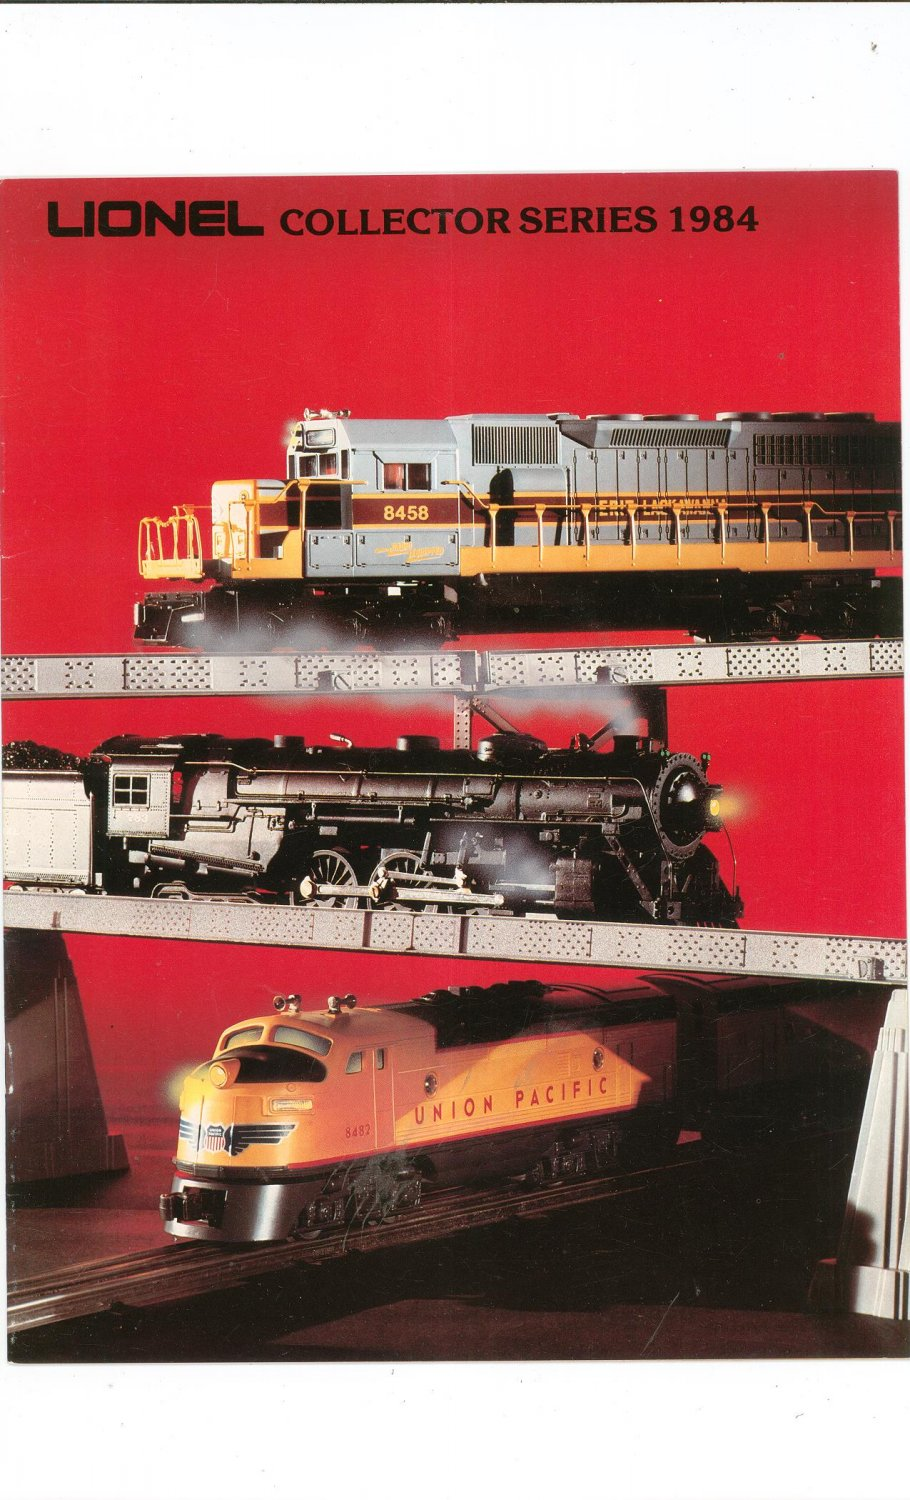 Vintage Lionel Collector Series Trains Catalog 1984 Not PDF Free Shipping Offer